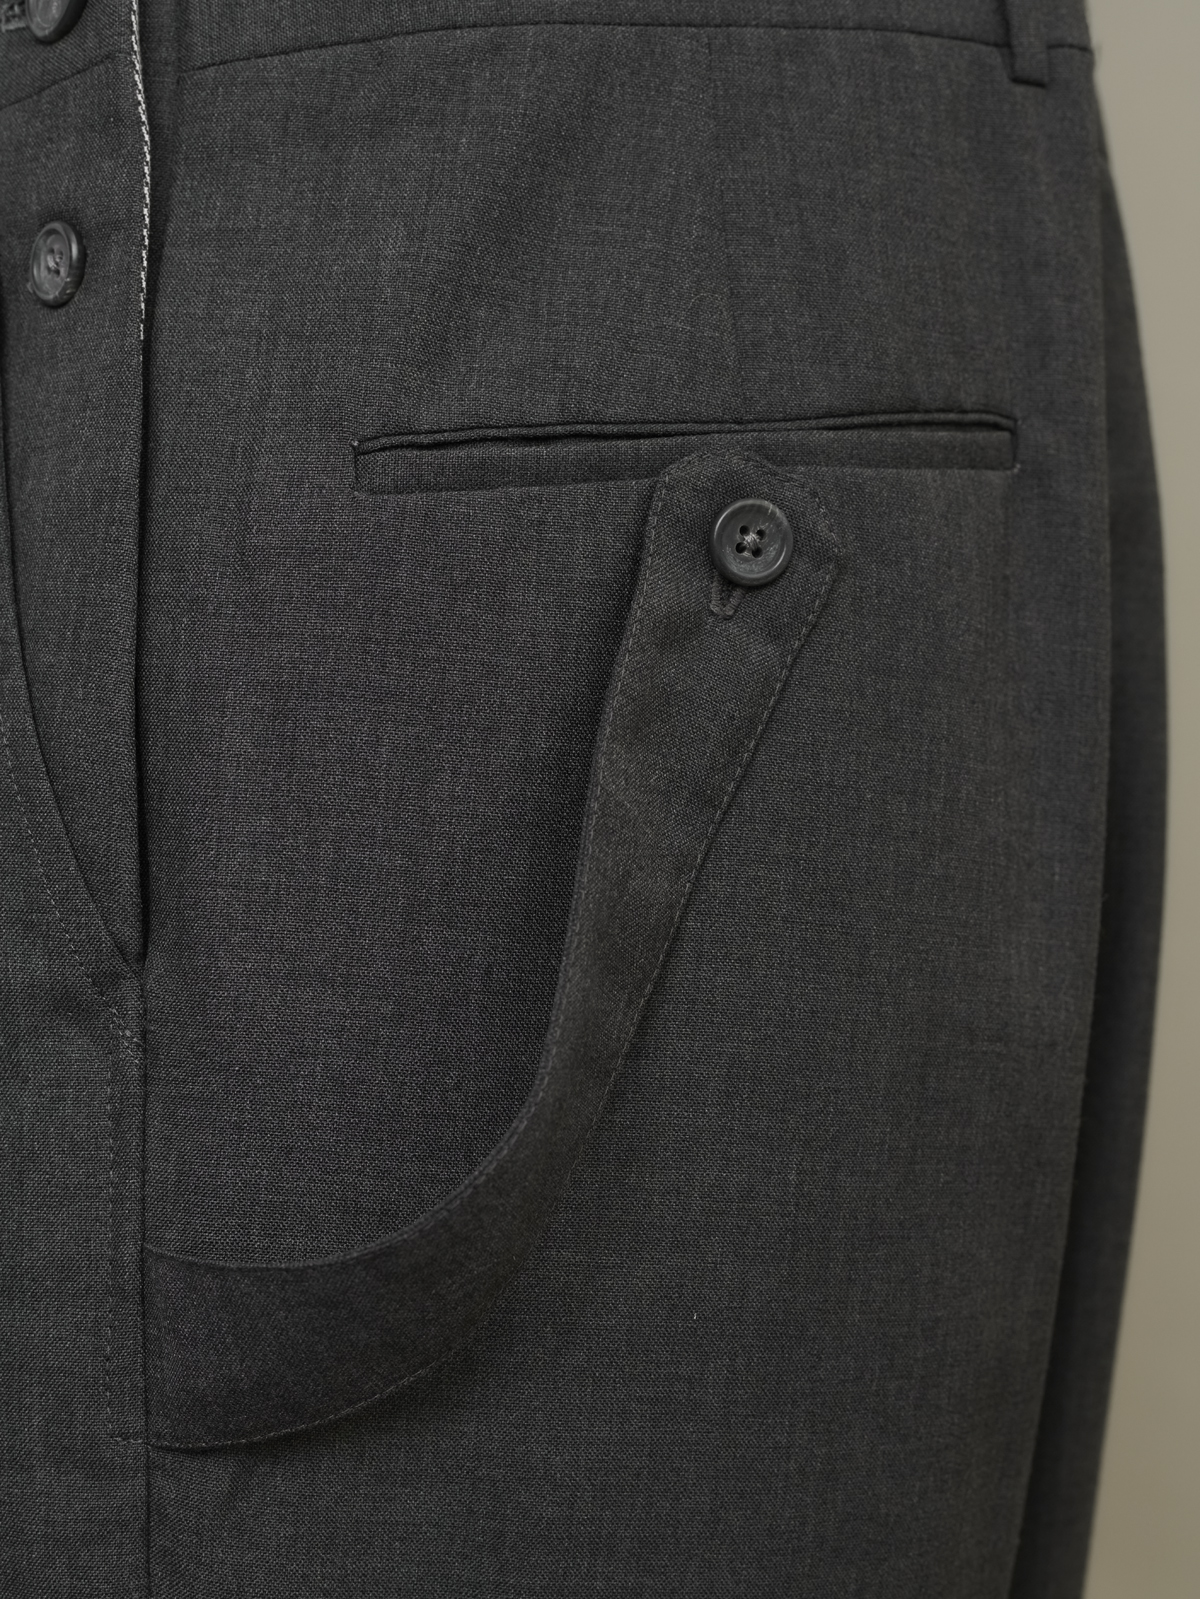 Close-up of hammer loop on business overalls